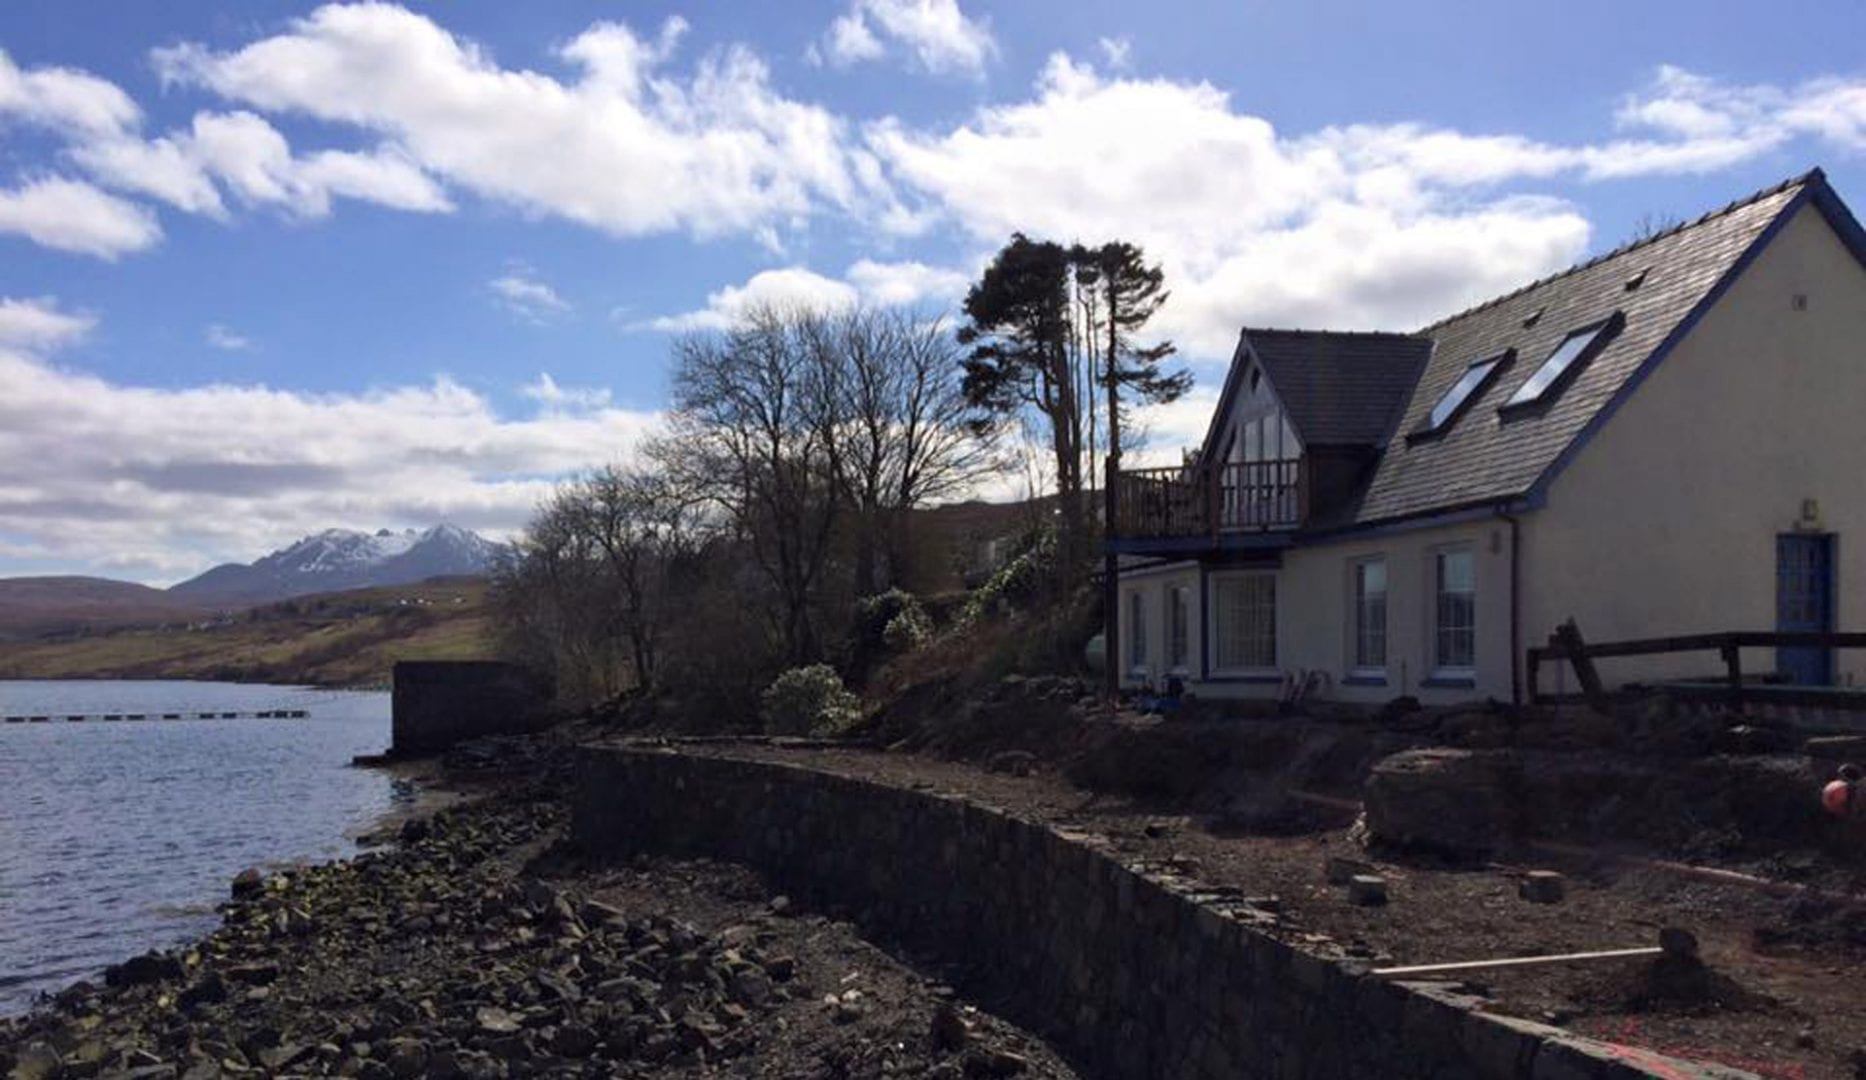 Waterfront Bunkhouse The Old Inn Carbost Isle of Skye